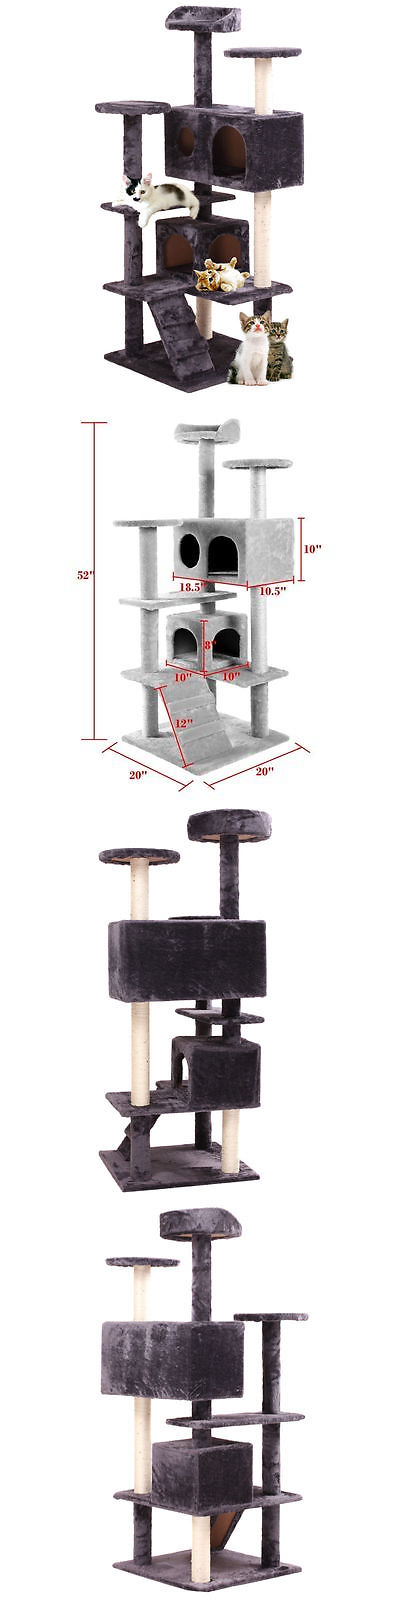 Furniture And Scratchers 20740: Pet House Cat Tree Tower Condo Furniture  Scratch Post Kitty Play